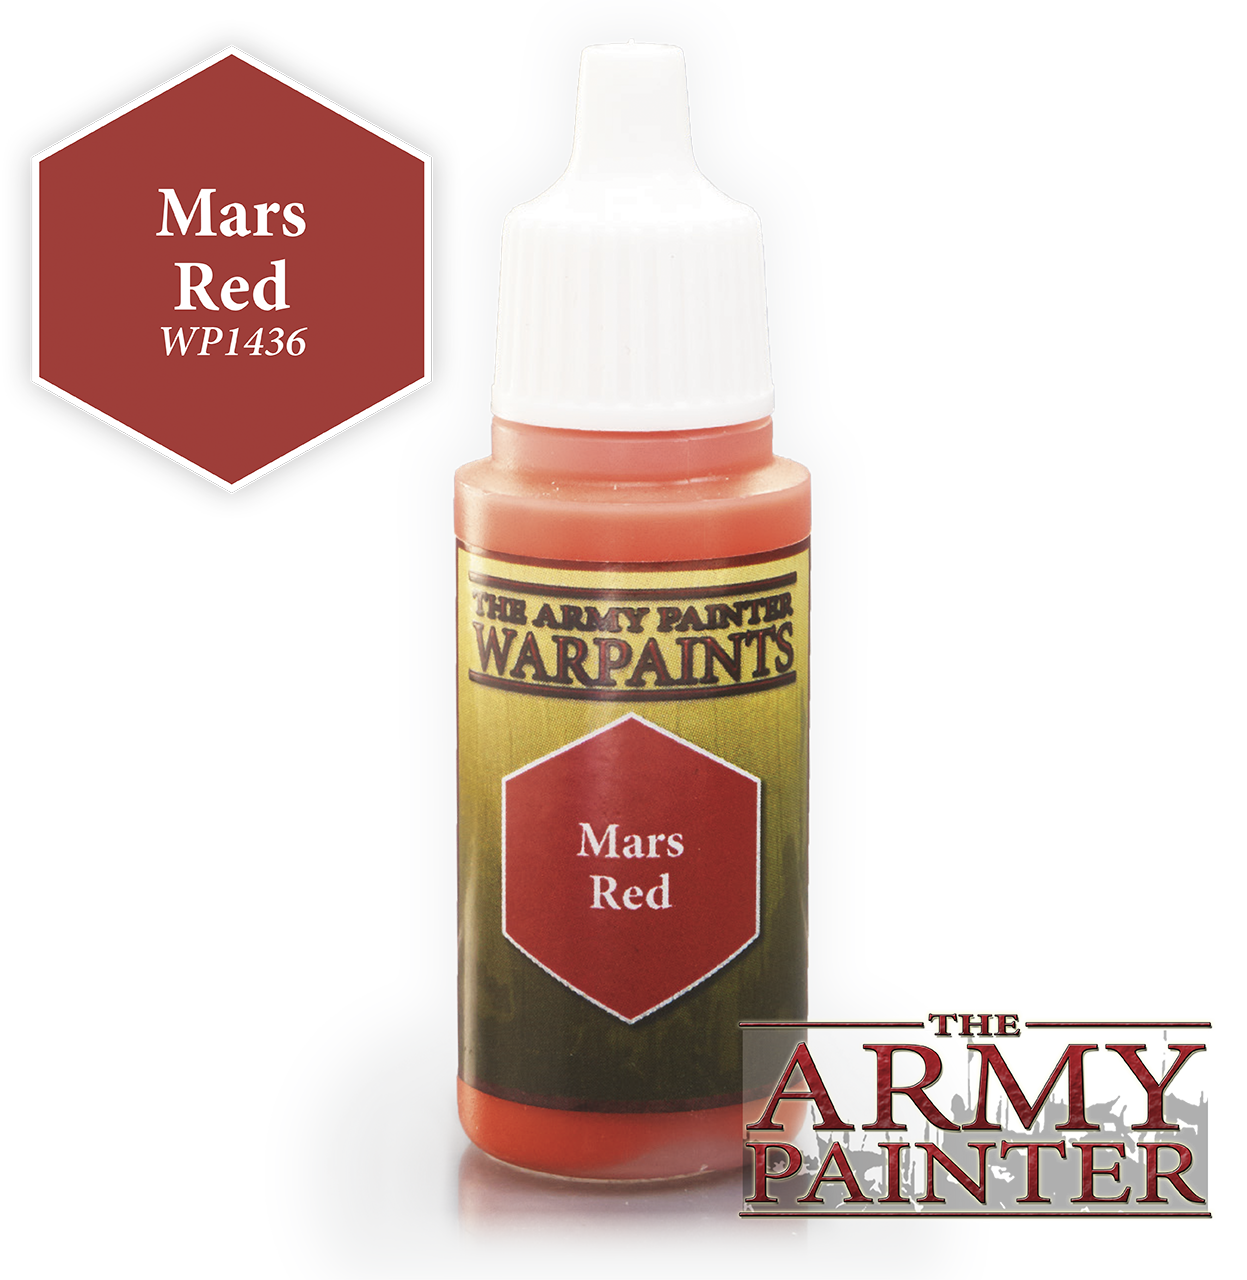 Mars Red - Army Painter Warpaints WP1436